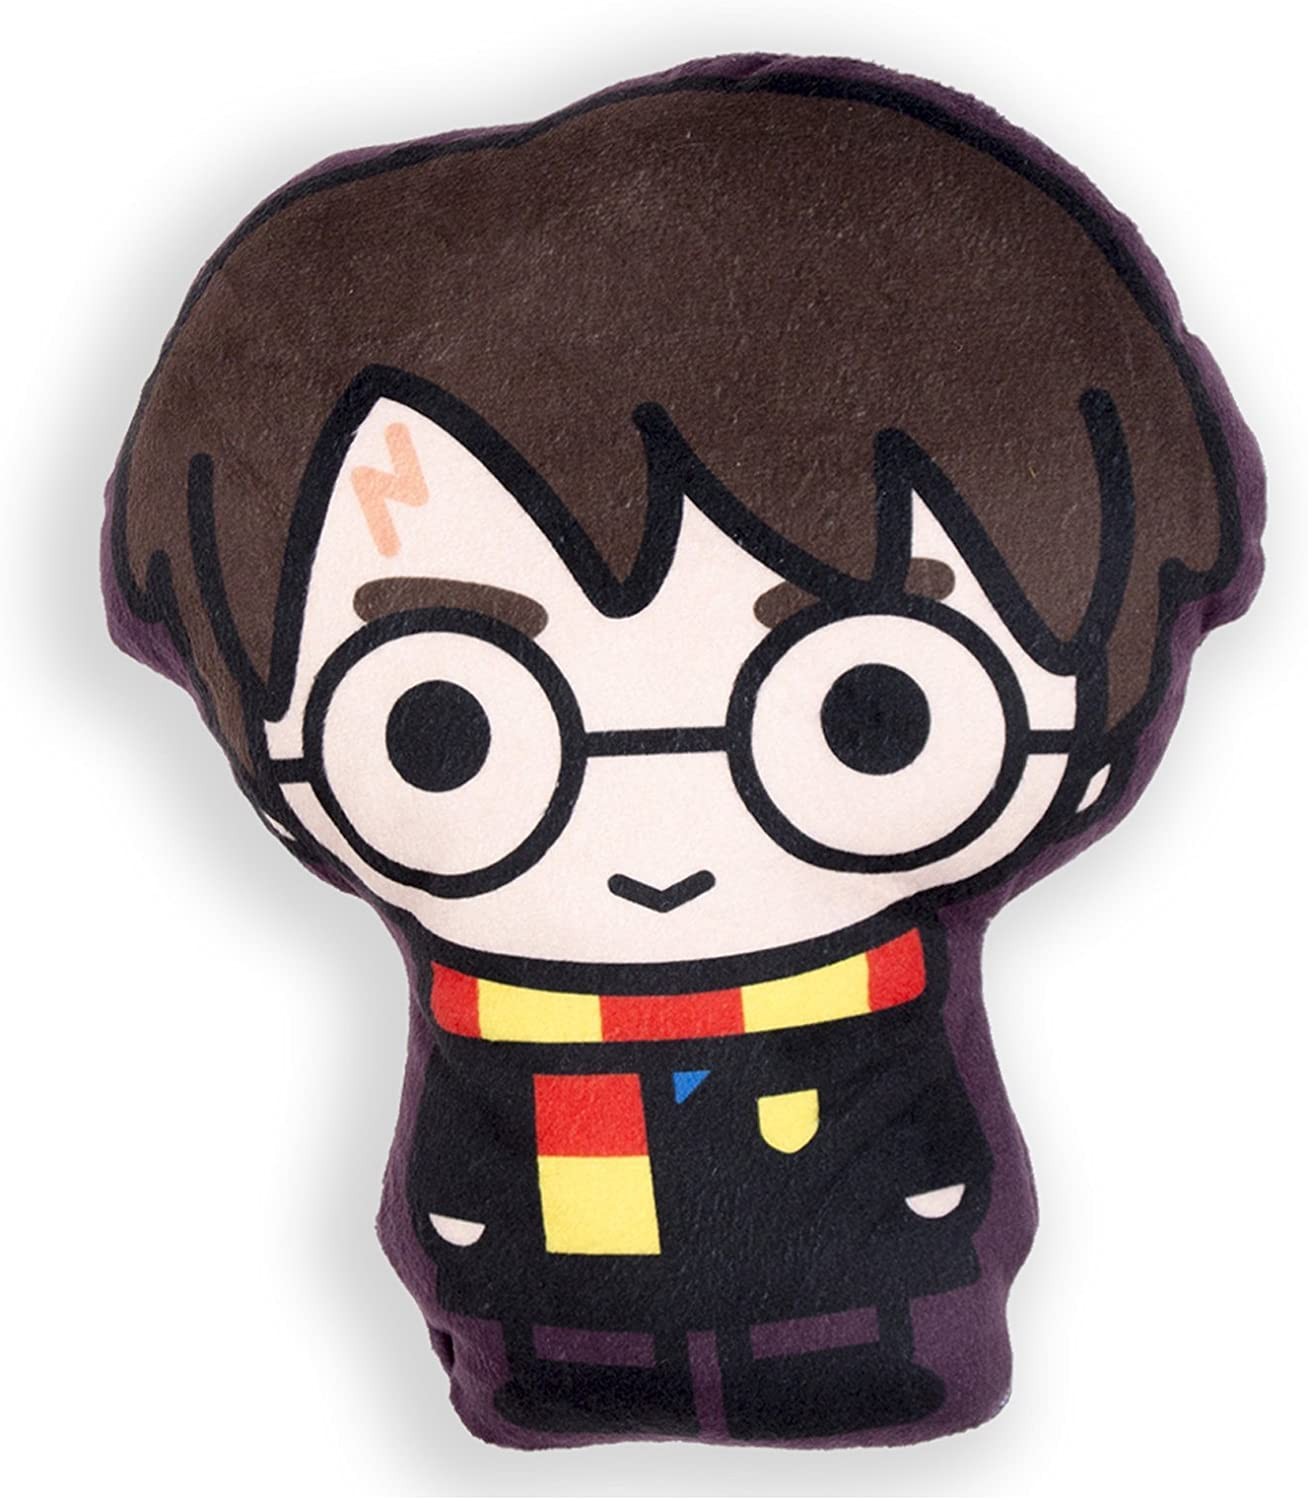 Coussin HARRY POTTER - HARRY POTTER - la boutique du sorcier